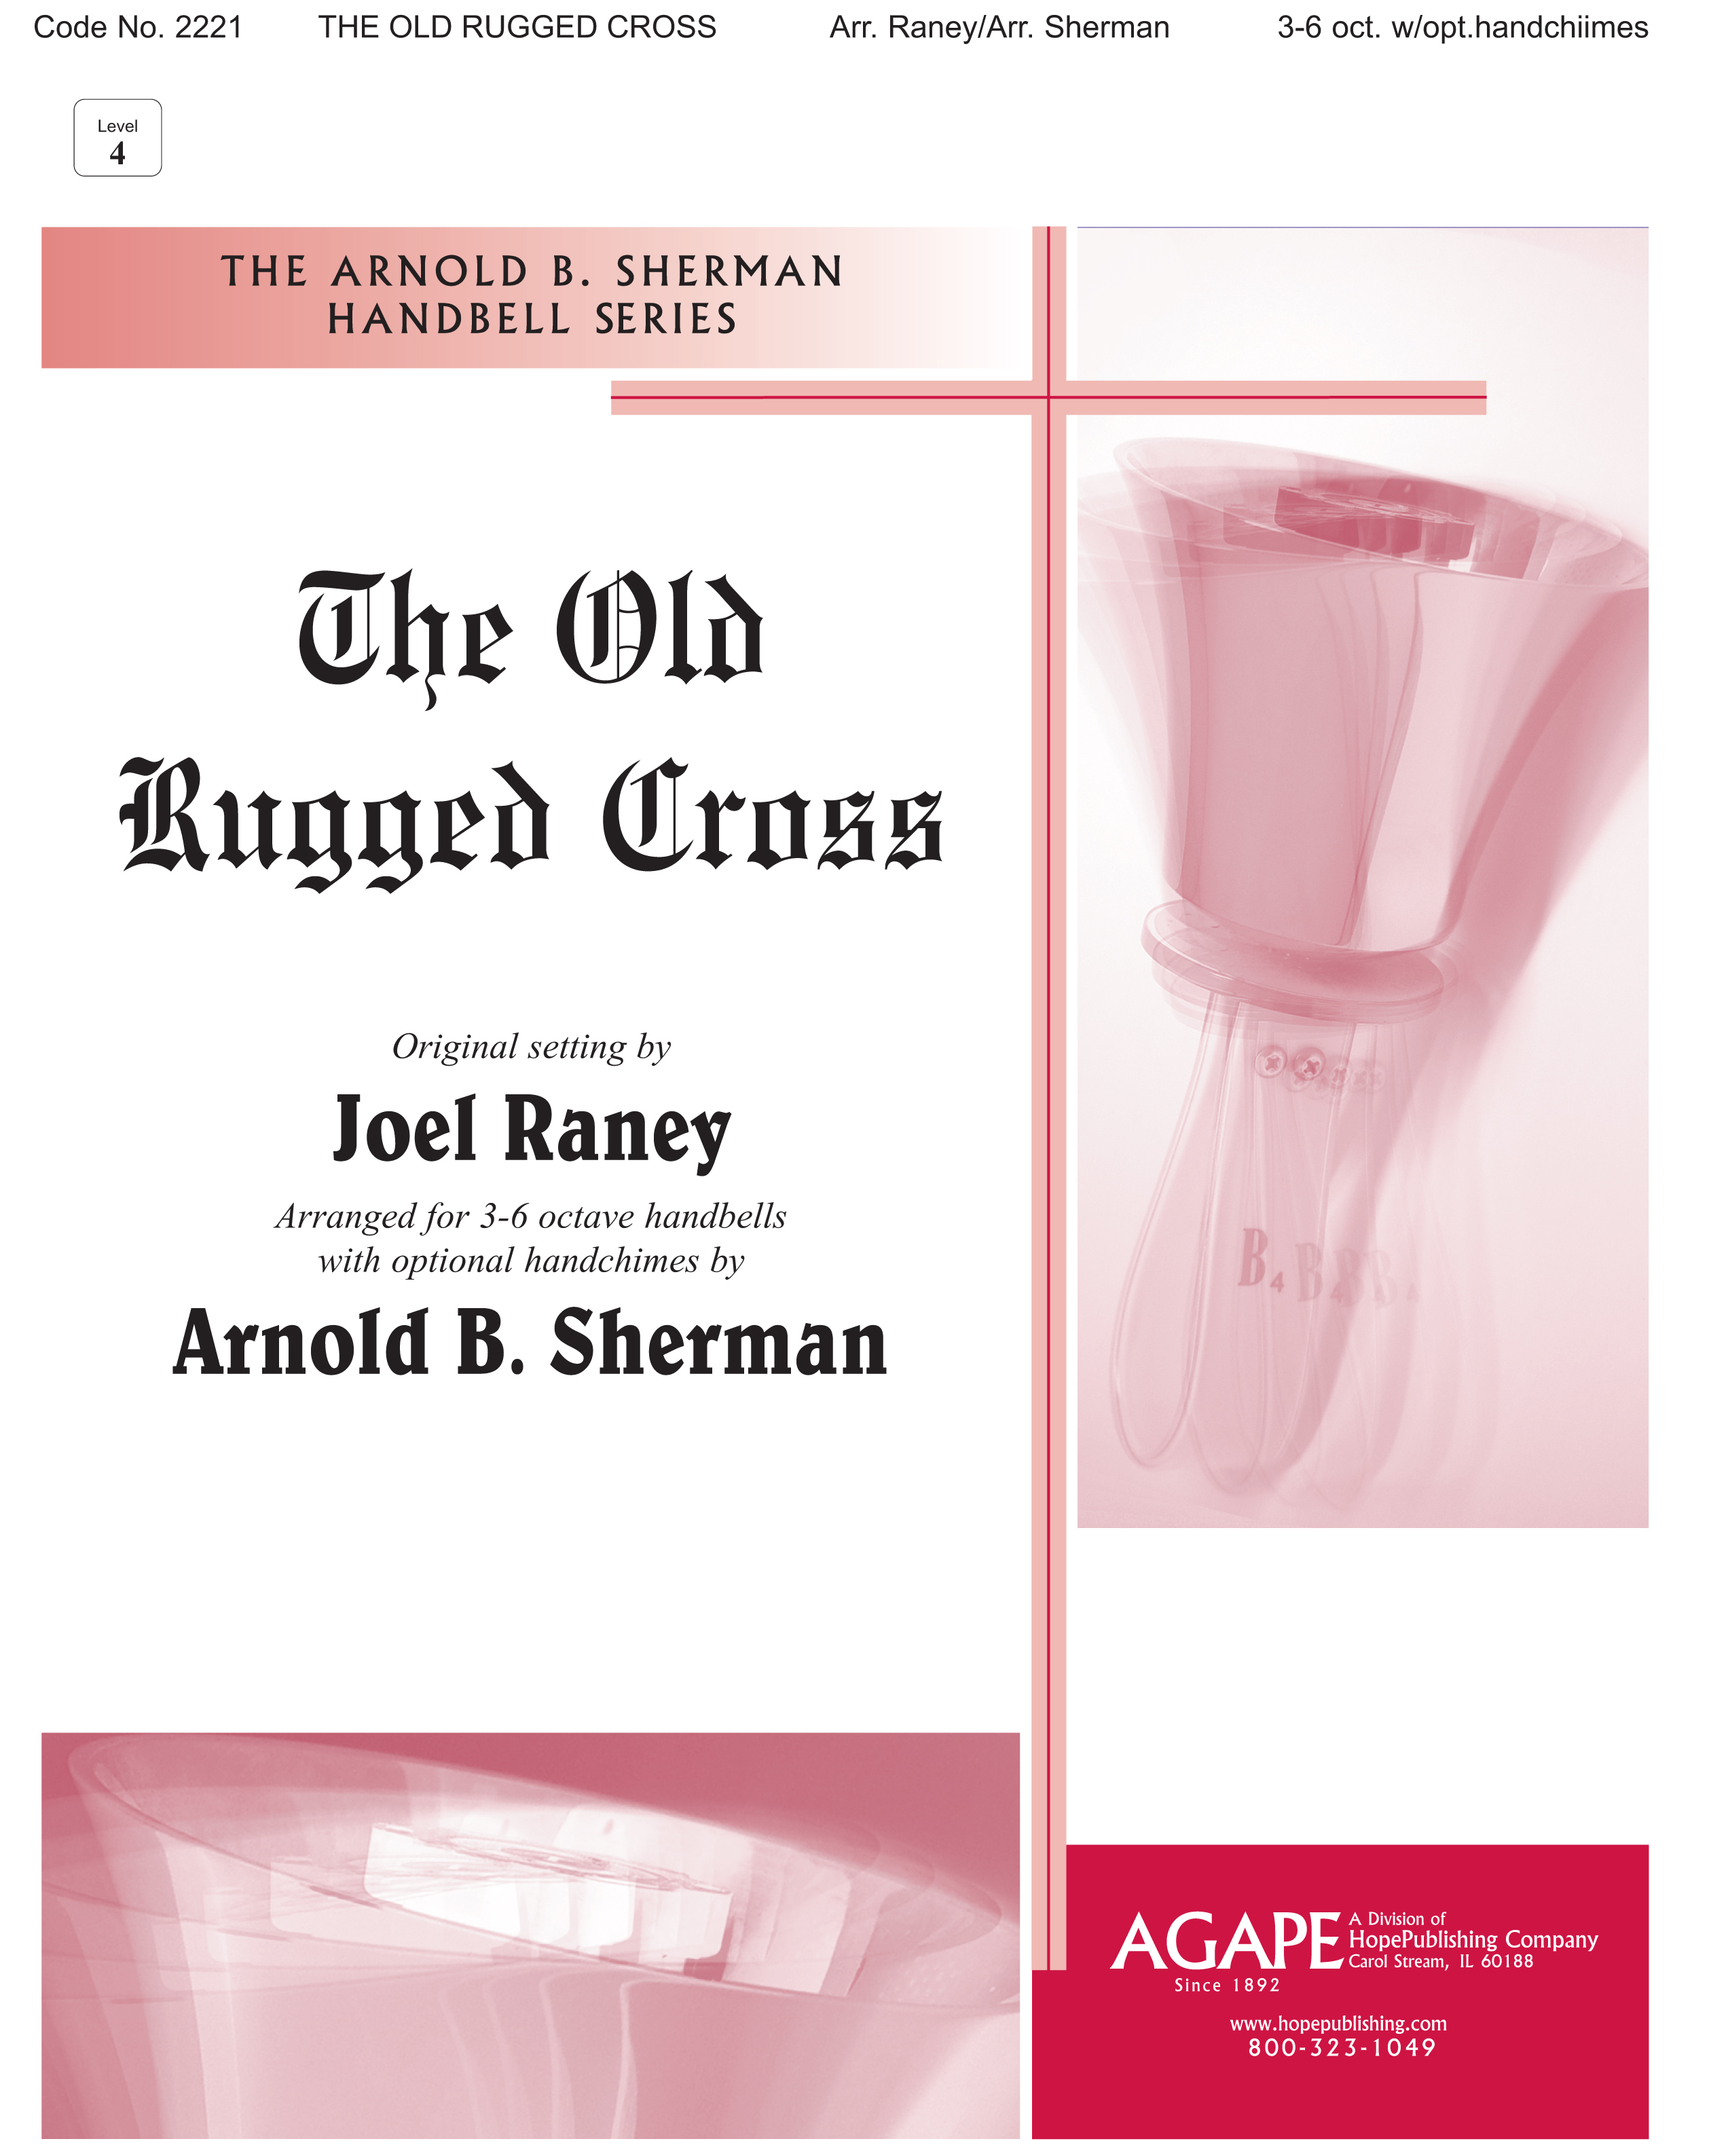 Old Rugged Cross The - 3-6 Octave Cover Image